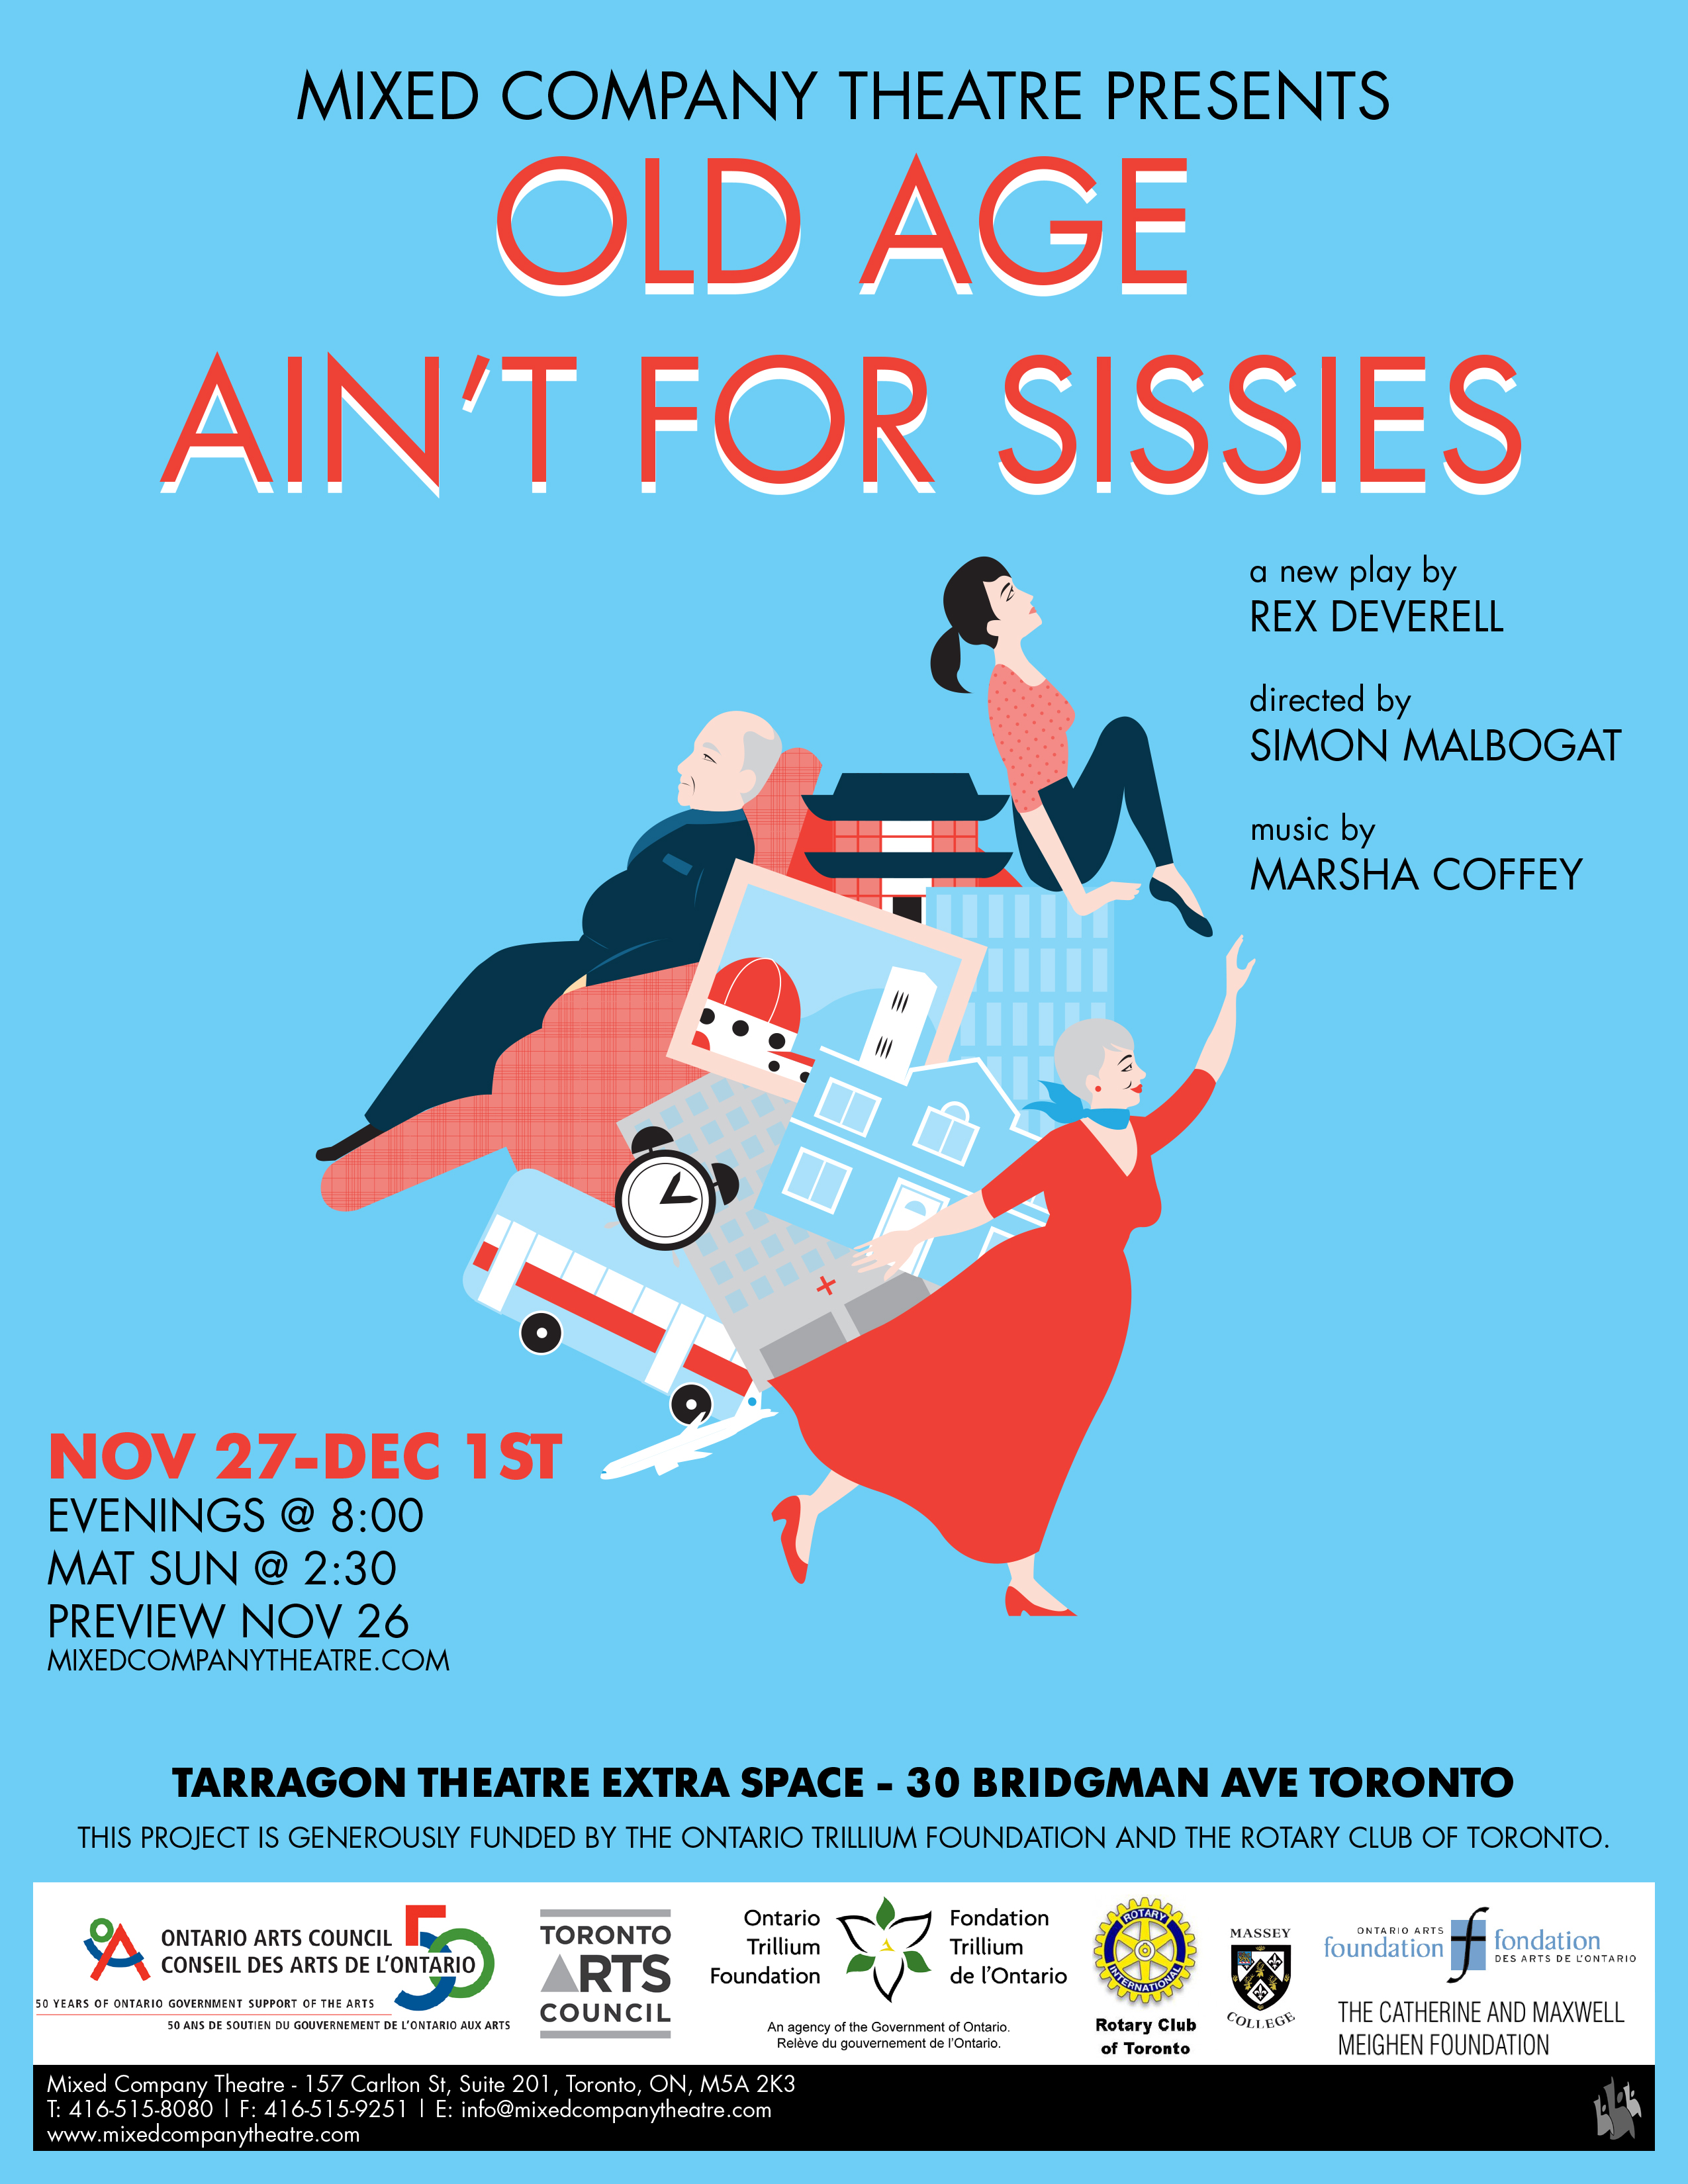 Mixed Company Theatre - Old Age Aint for Sissies Poster